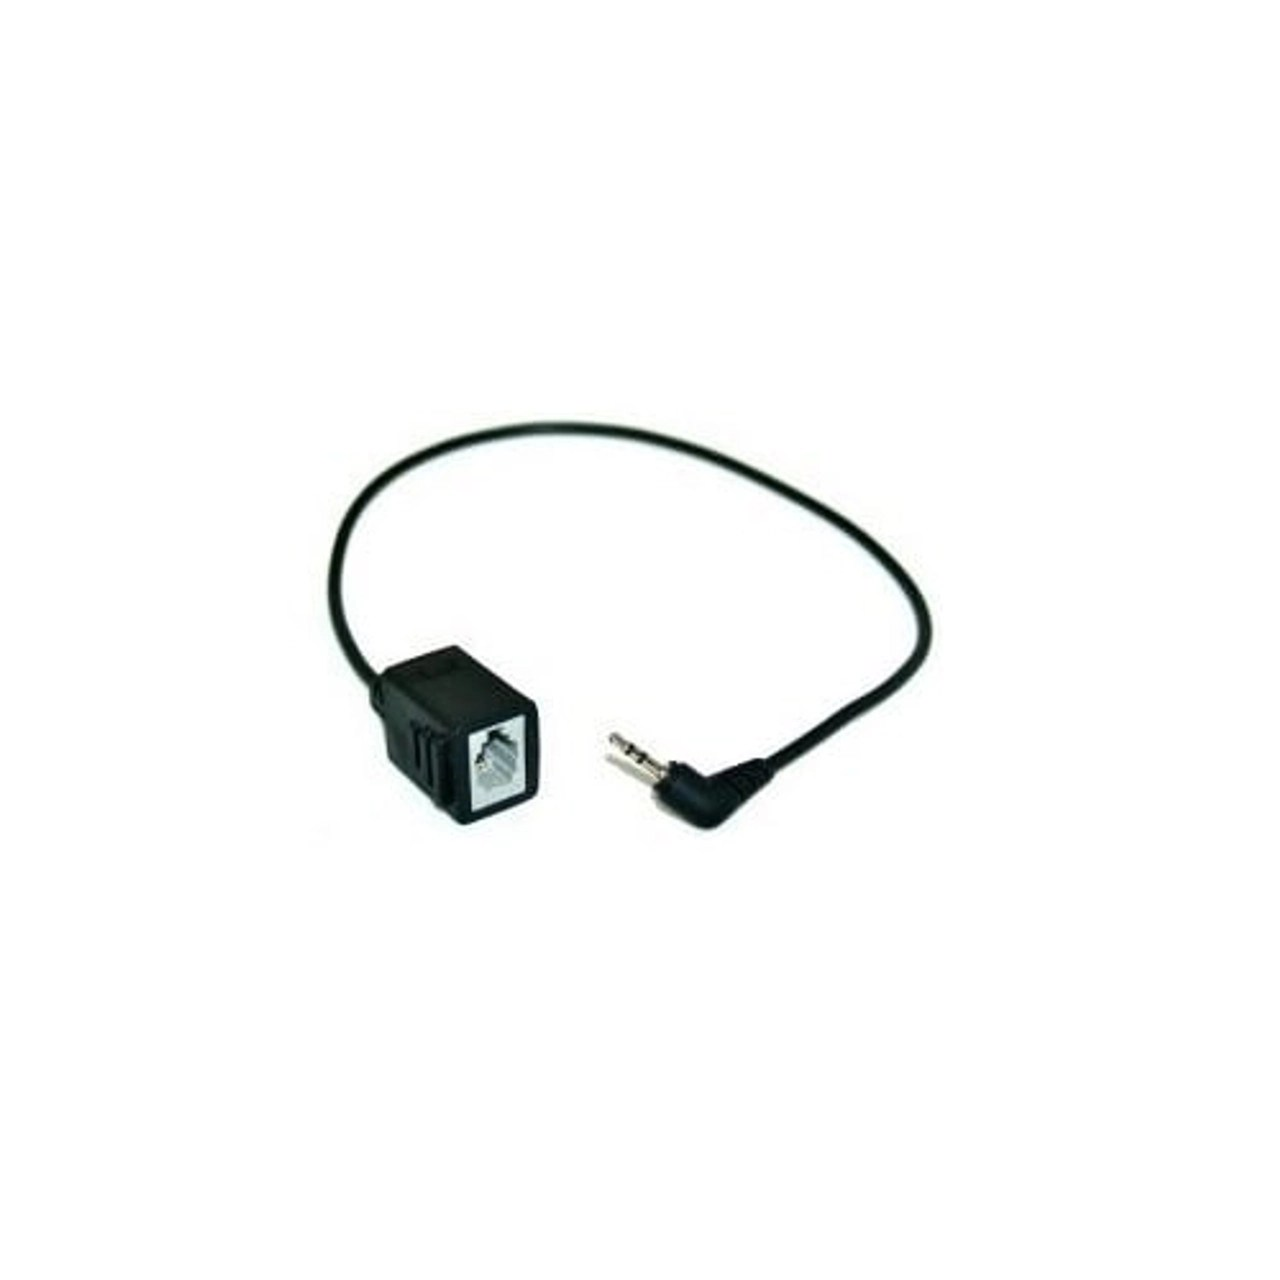 rj9 female 2 5mm male adapter plantronics headset to cordless phone connector cable [ 1280 x 1280 Pixel ]